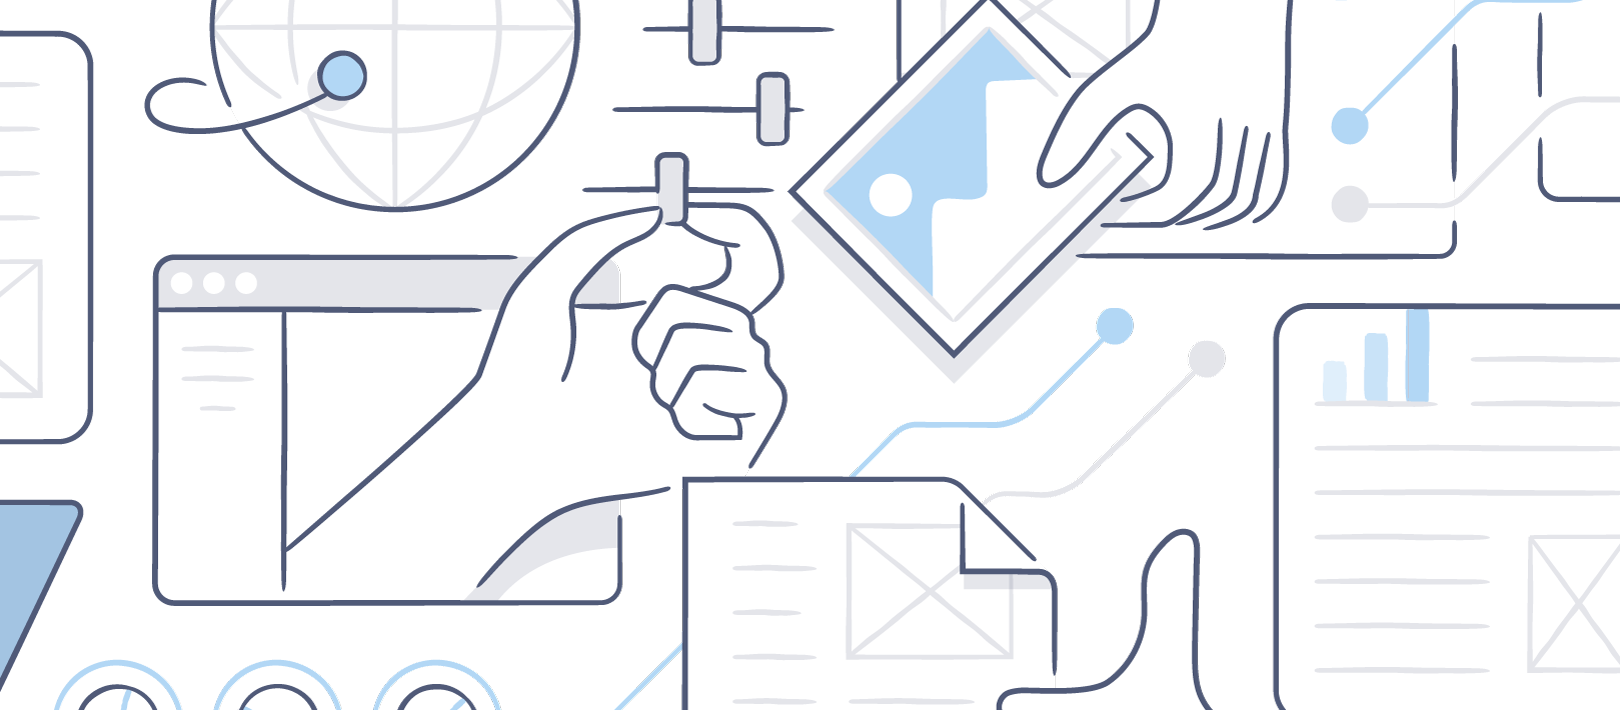 Dropbox introduces enhancements to our AdminX tools, Dropbox Paper beta, and global infrastructure.